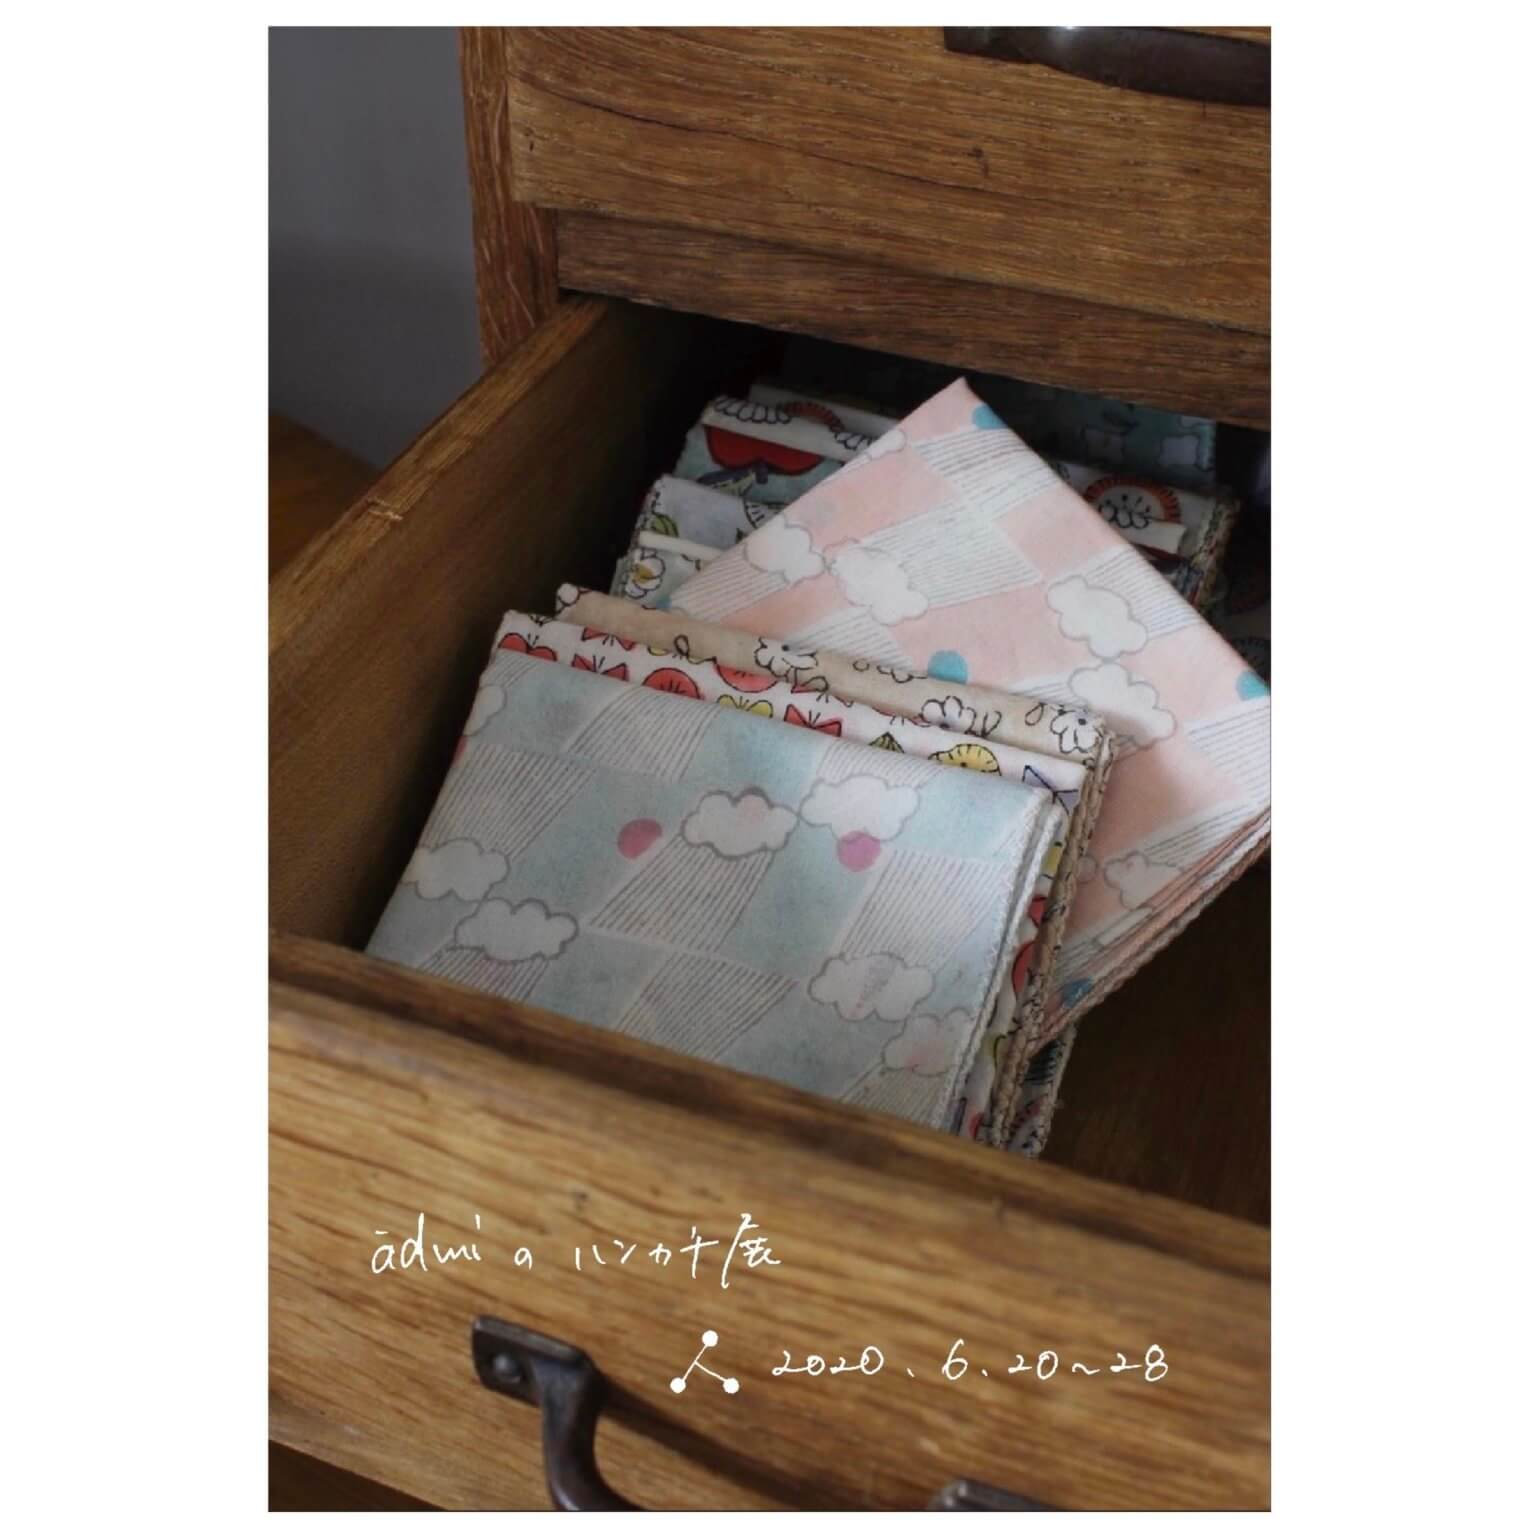 A variety of admi handkerchiefs in a wooden drawer